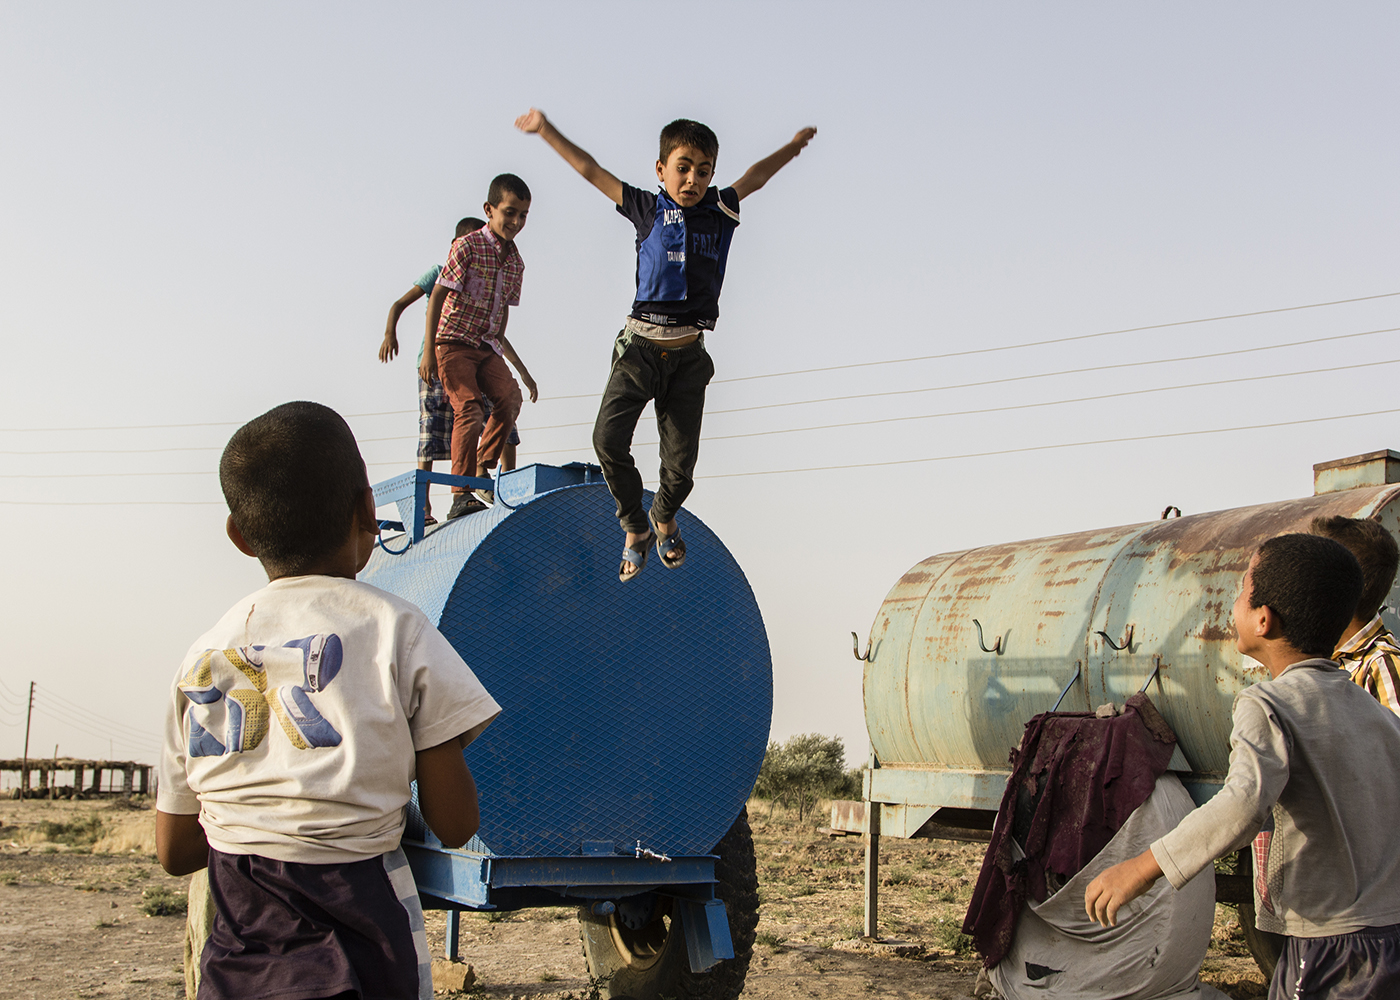 04/07/2015 -- Dibaga-Makhmur-, Iraq -- IDP kids jump from the tank of water as a game in Dibaga.